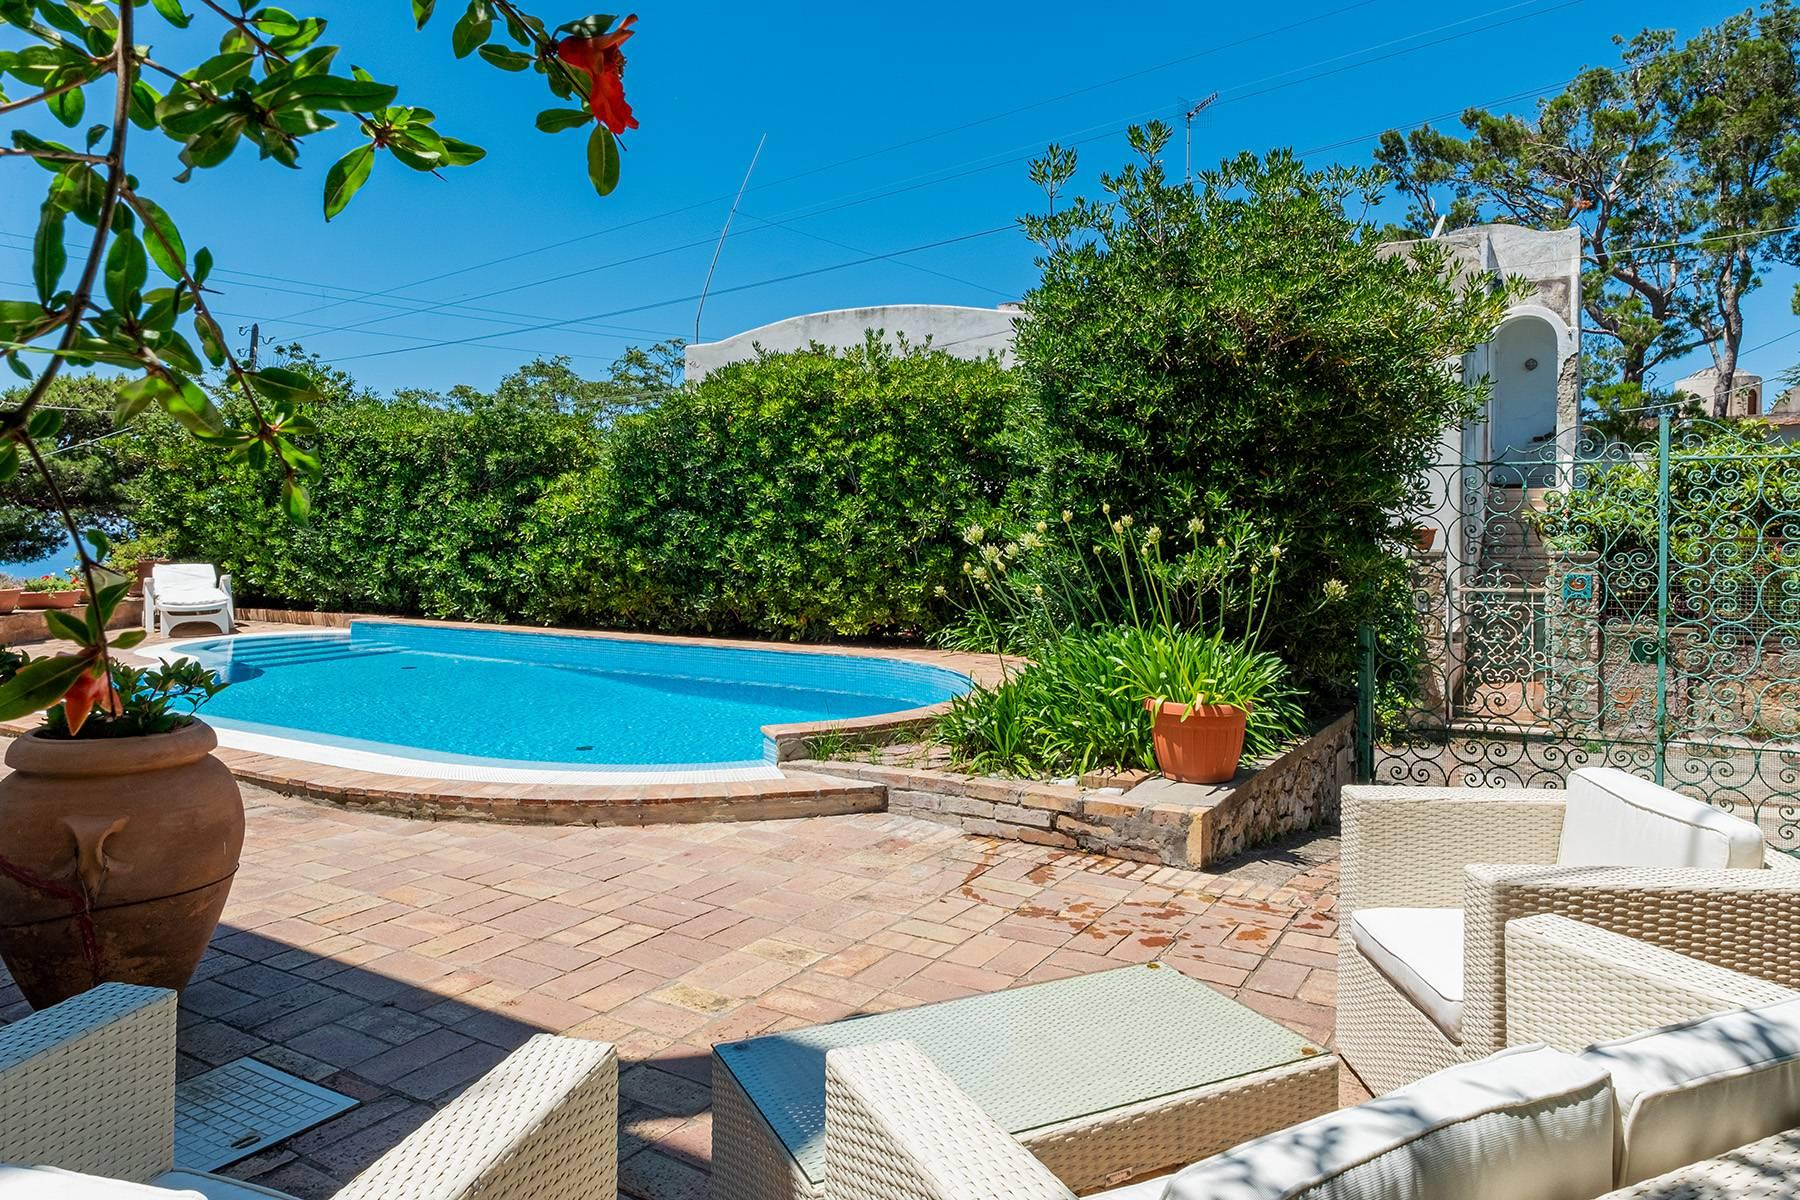 Charming villa with swimming pool in Anacapri - 6